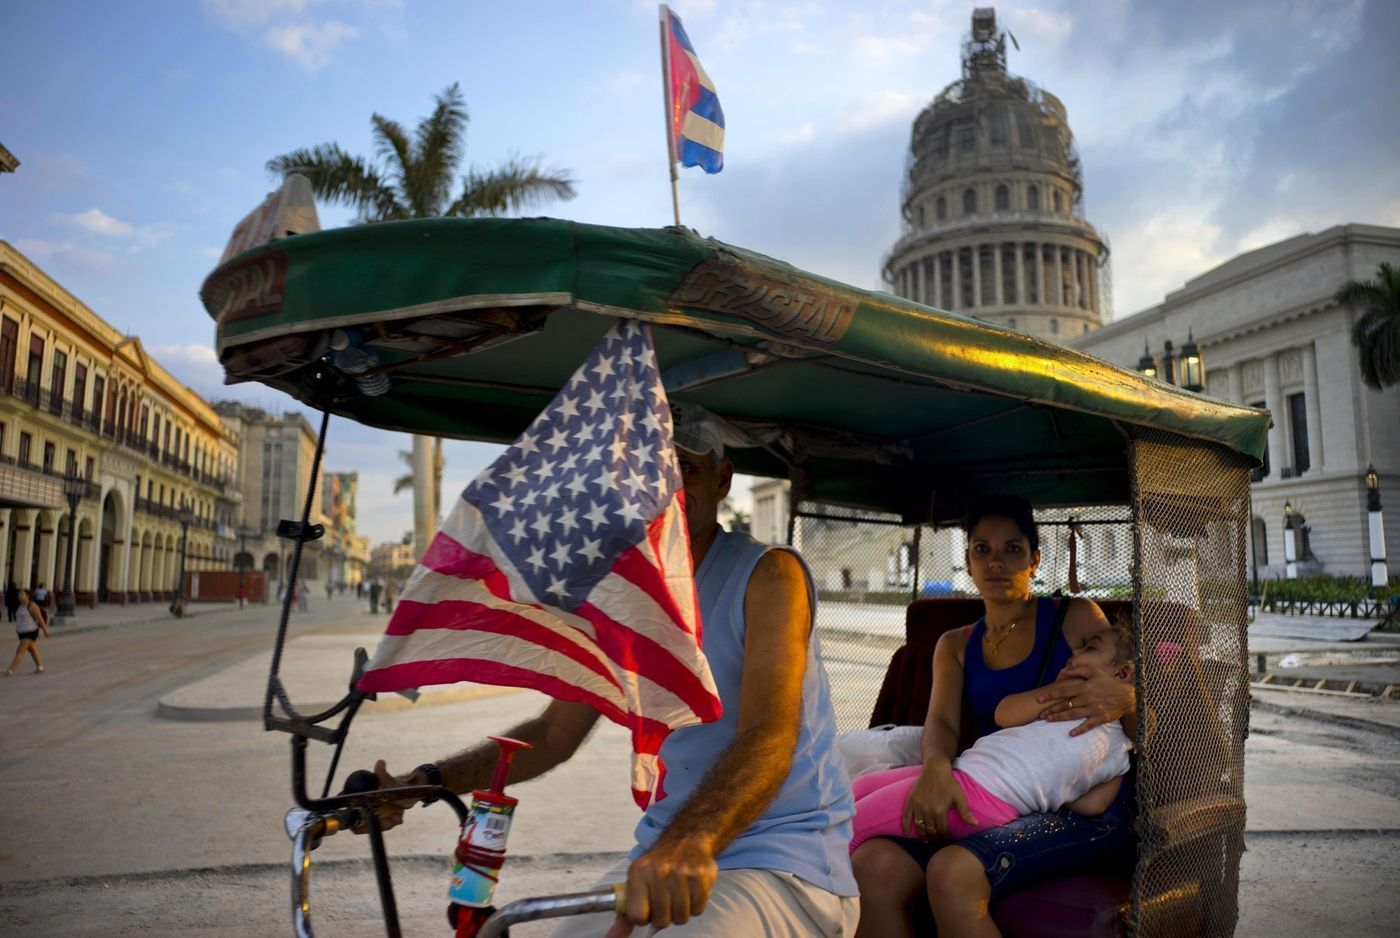 Yes, America, you can still visit Cuba. And the feds have softened their warnings #visitcuba Yes, America, you can still visit Cuba. And the feds have softened their warnings #visitcuba Yes, America, you can still visit Cuba. And the feds have softened their warnings #visitcuba Yes, America, you can still visit Cuba. And the feds have softened their warnings #visitcuba